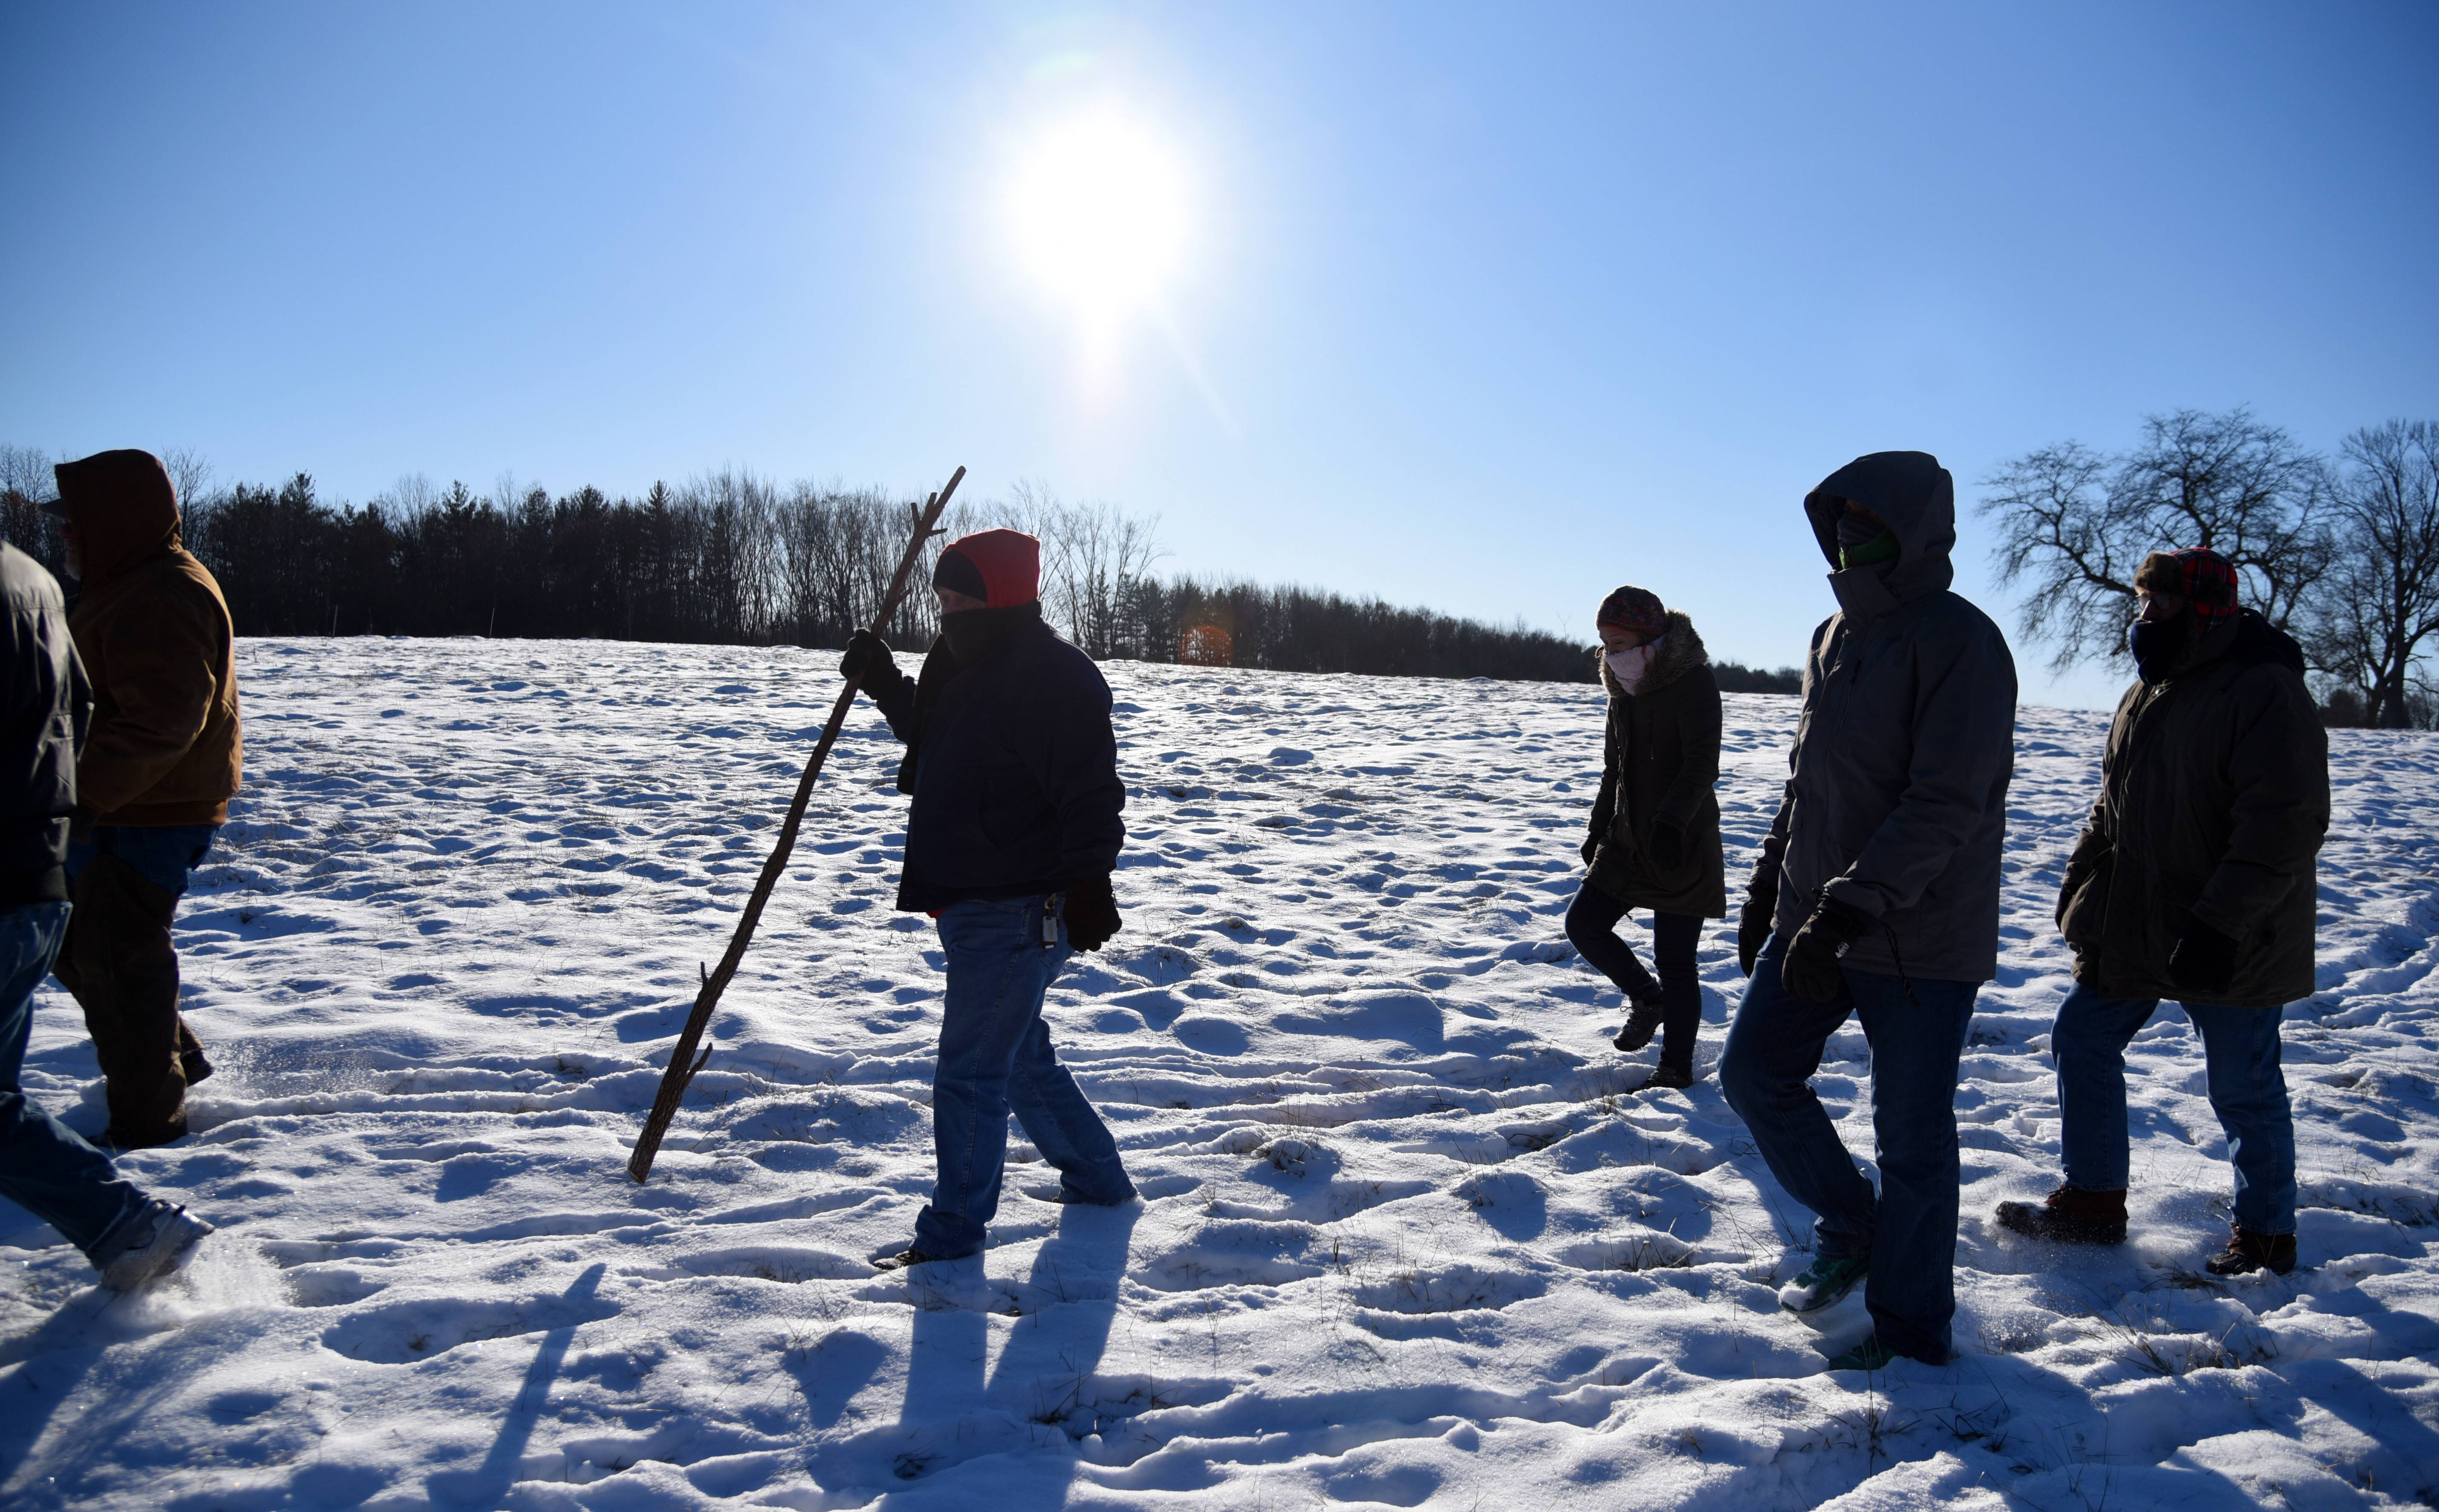 About a dozen hearty souls braved temperatures hovering around -10 Monday during a New Year's Day hike at the LeRoy Oakes Forest Preserve in St. Charles.